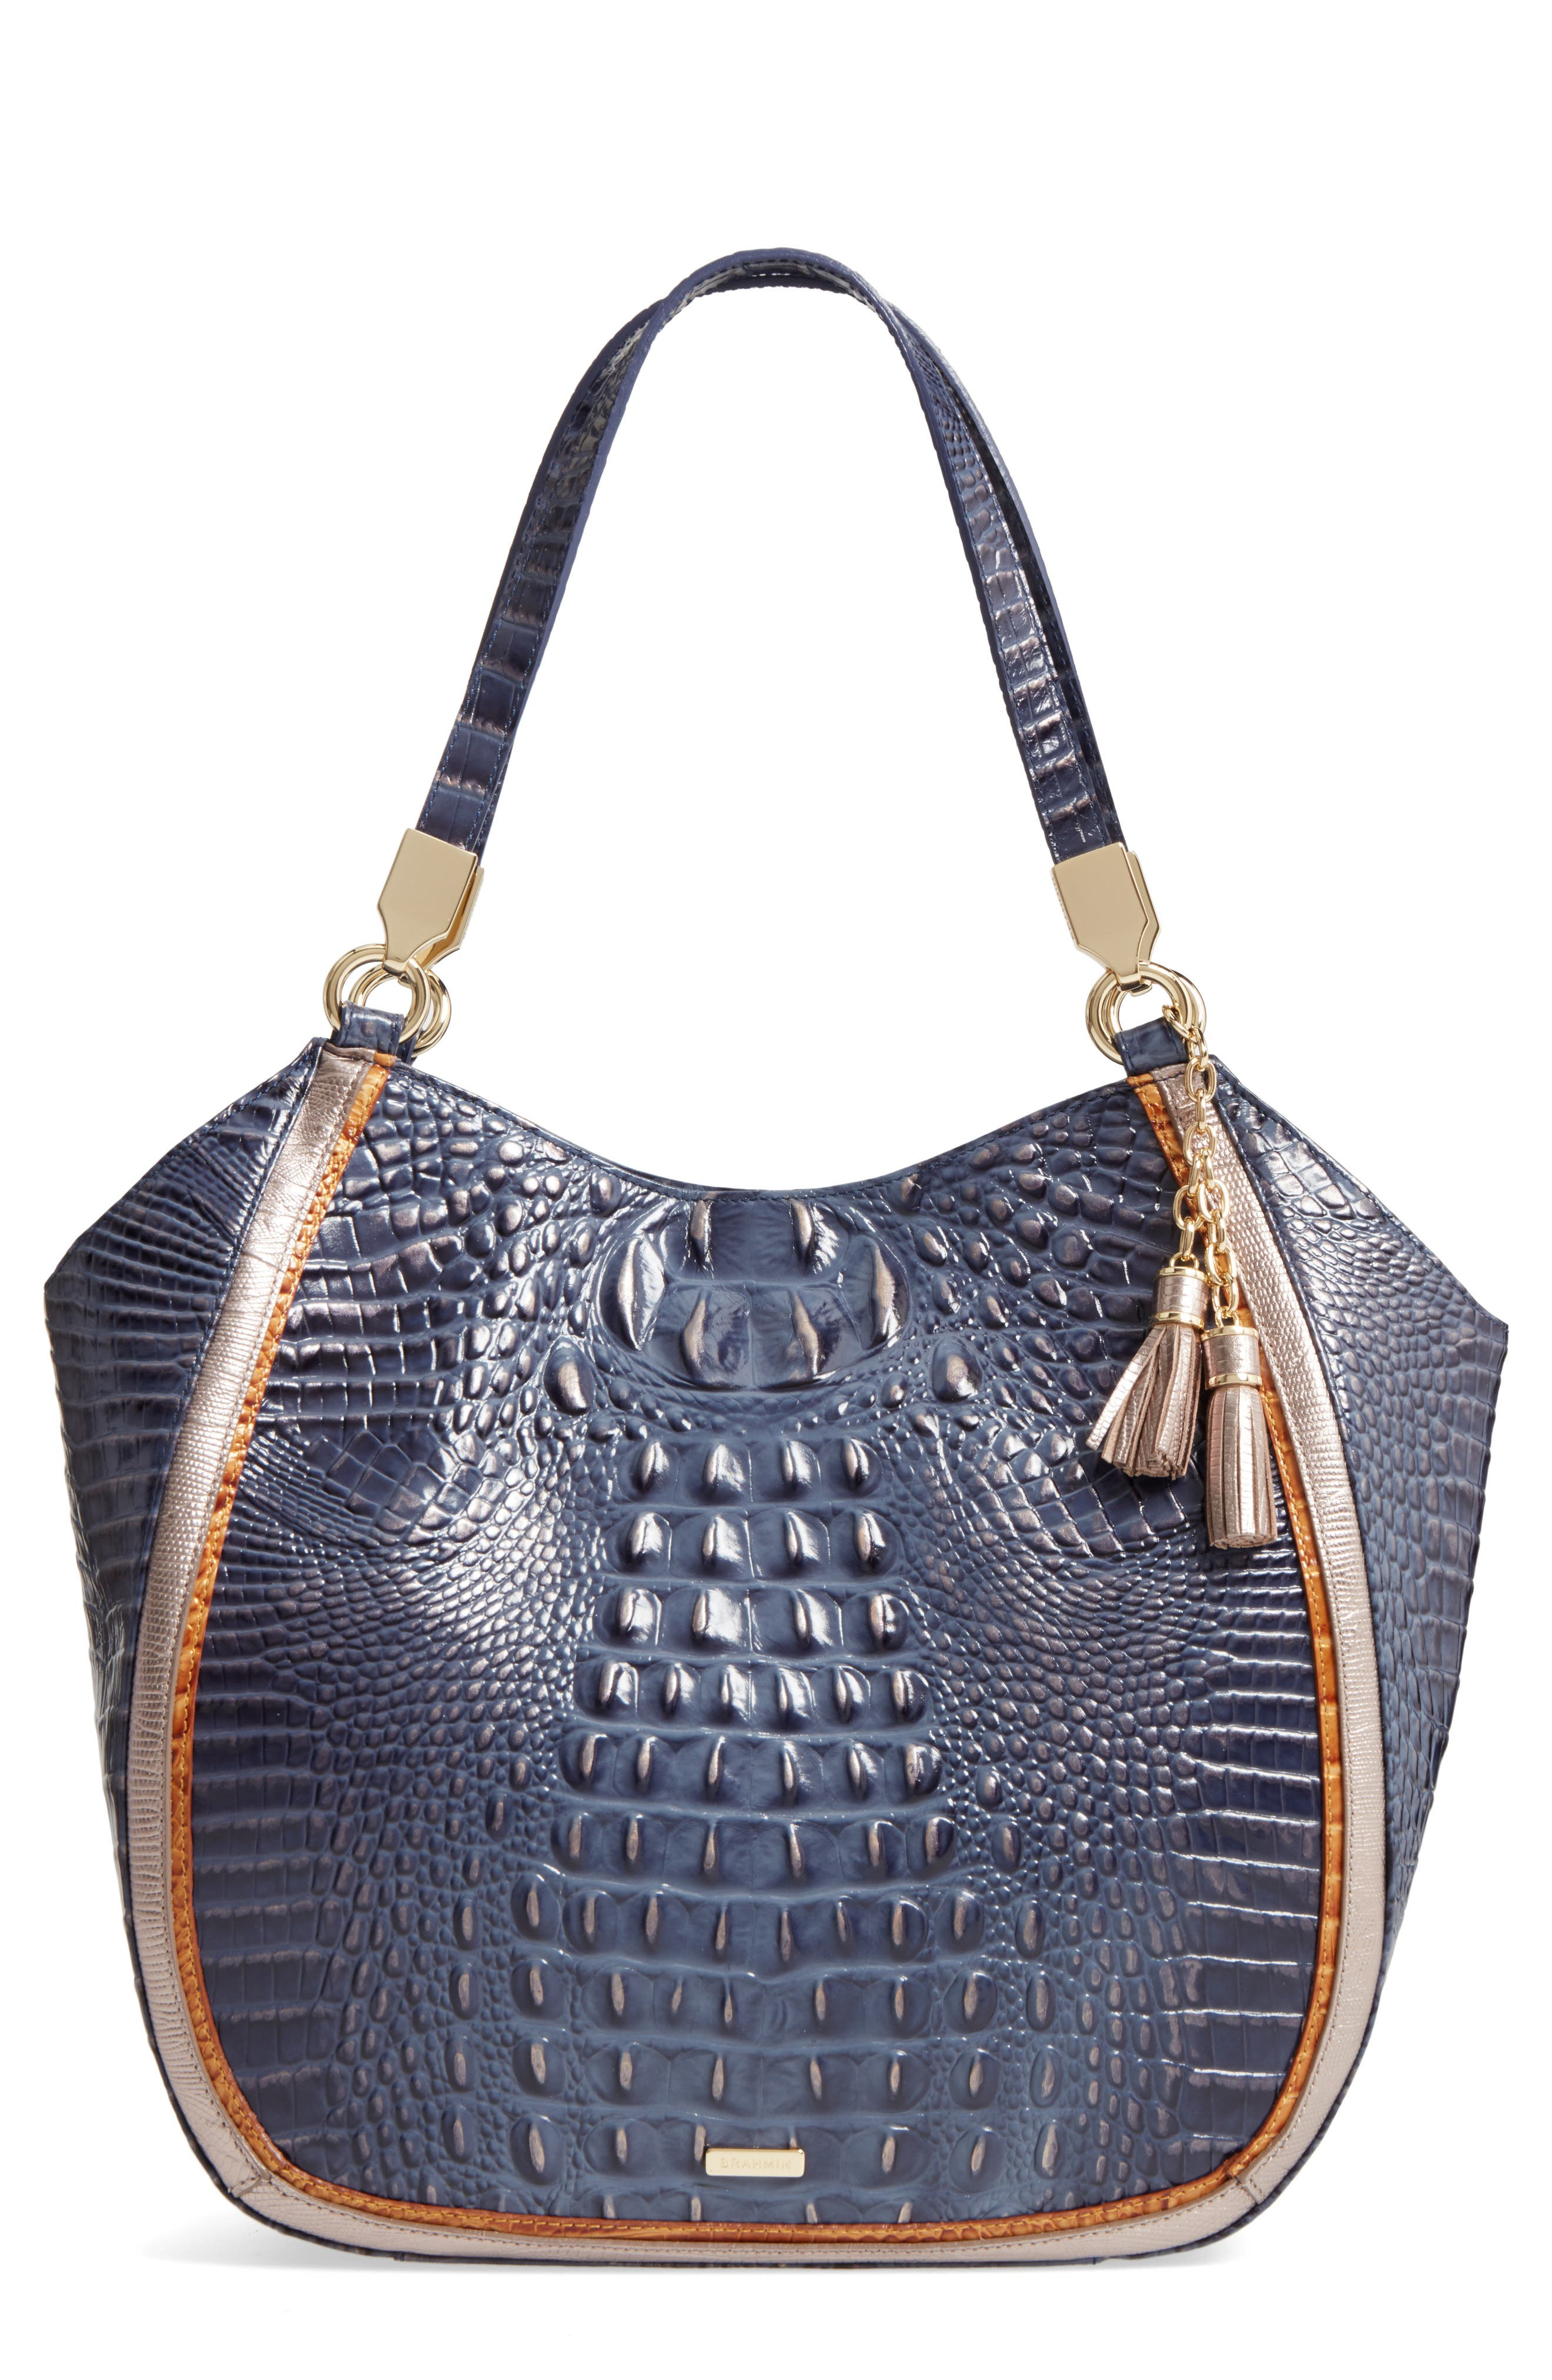 Brahmin Andesite Lucca Marianna Leather Tote